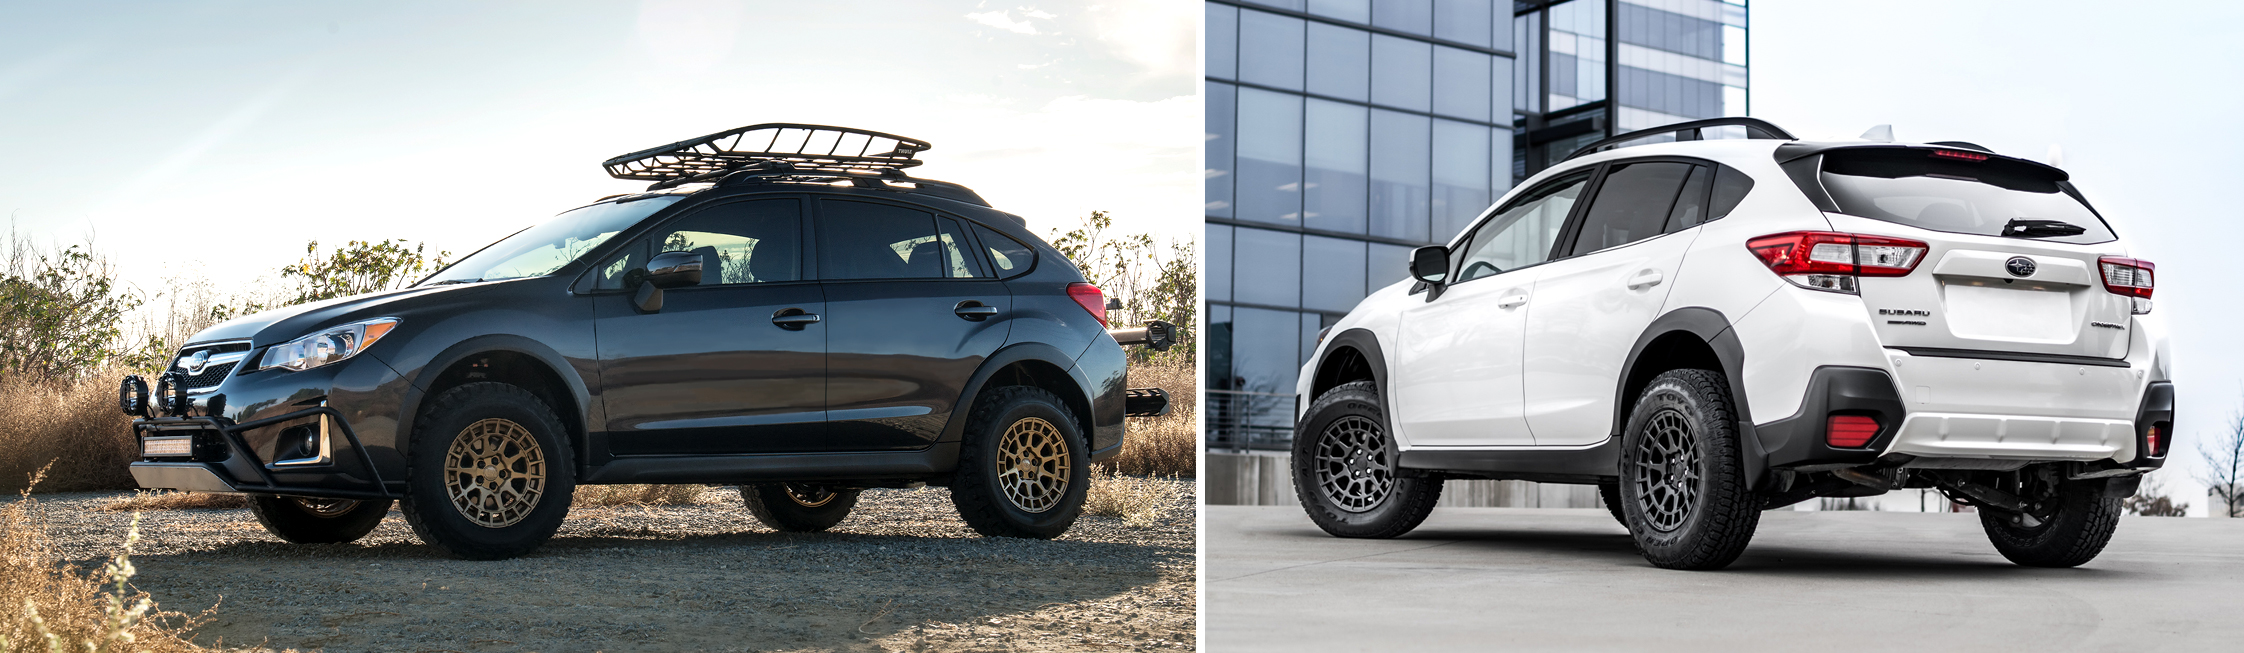 Two different Subaru's set up for Overlanding